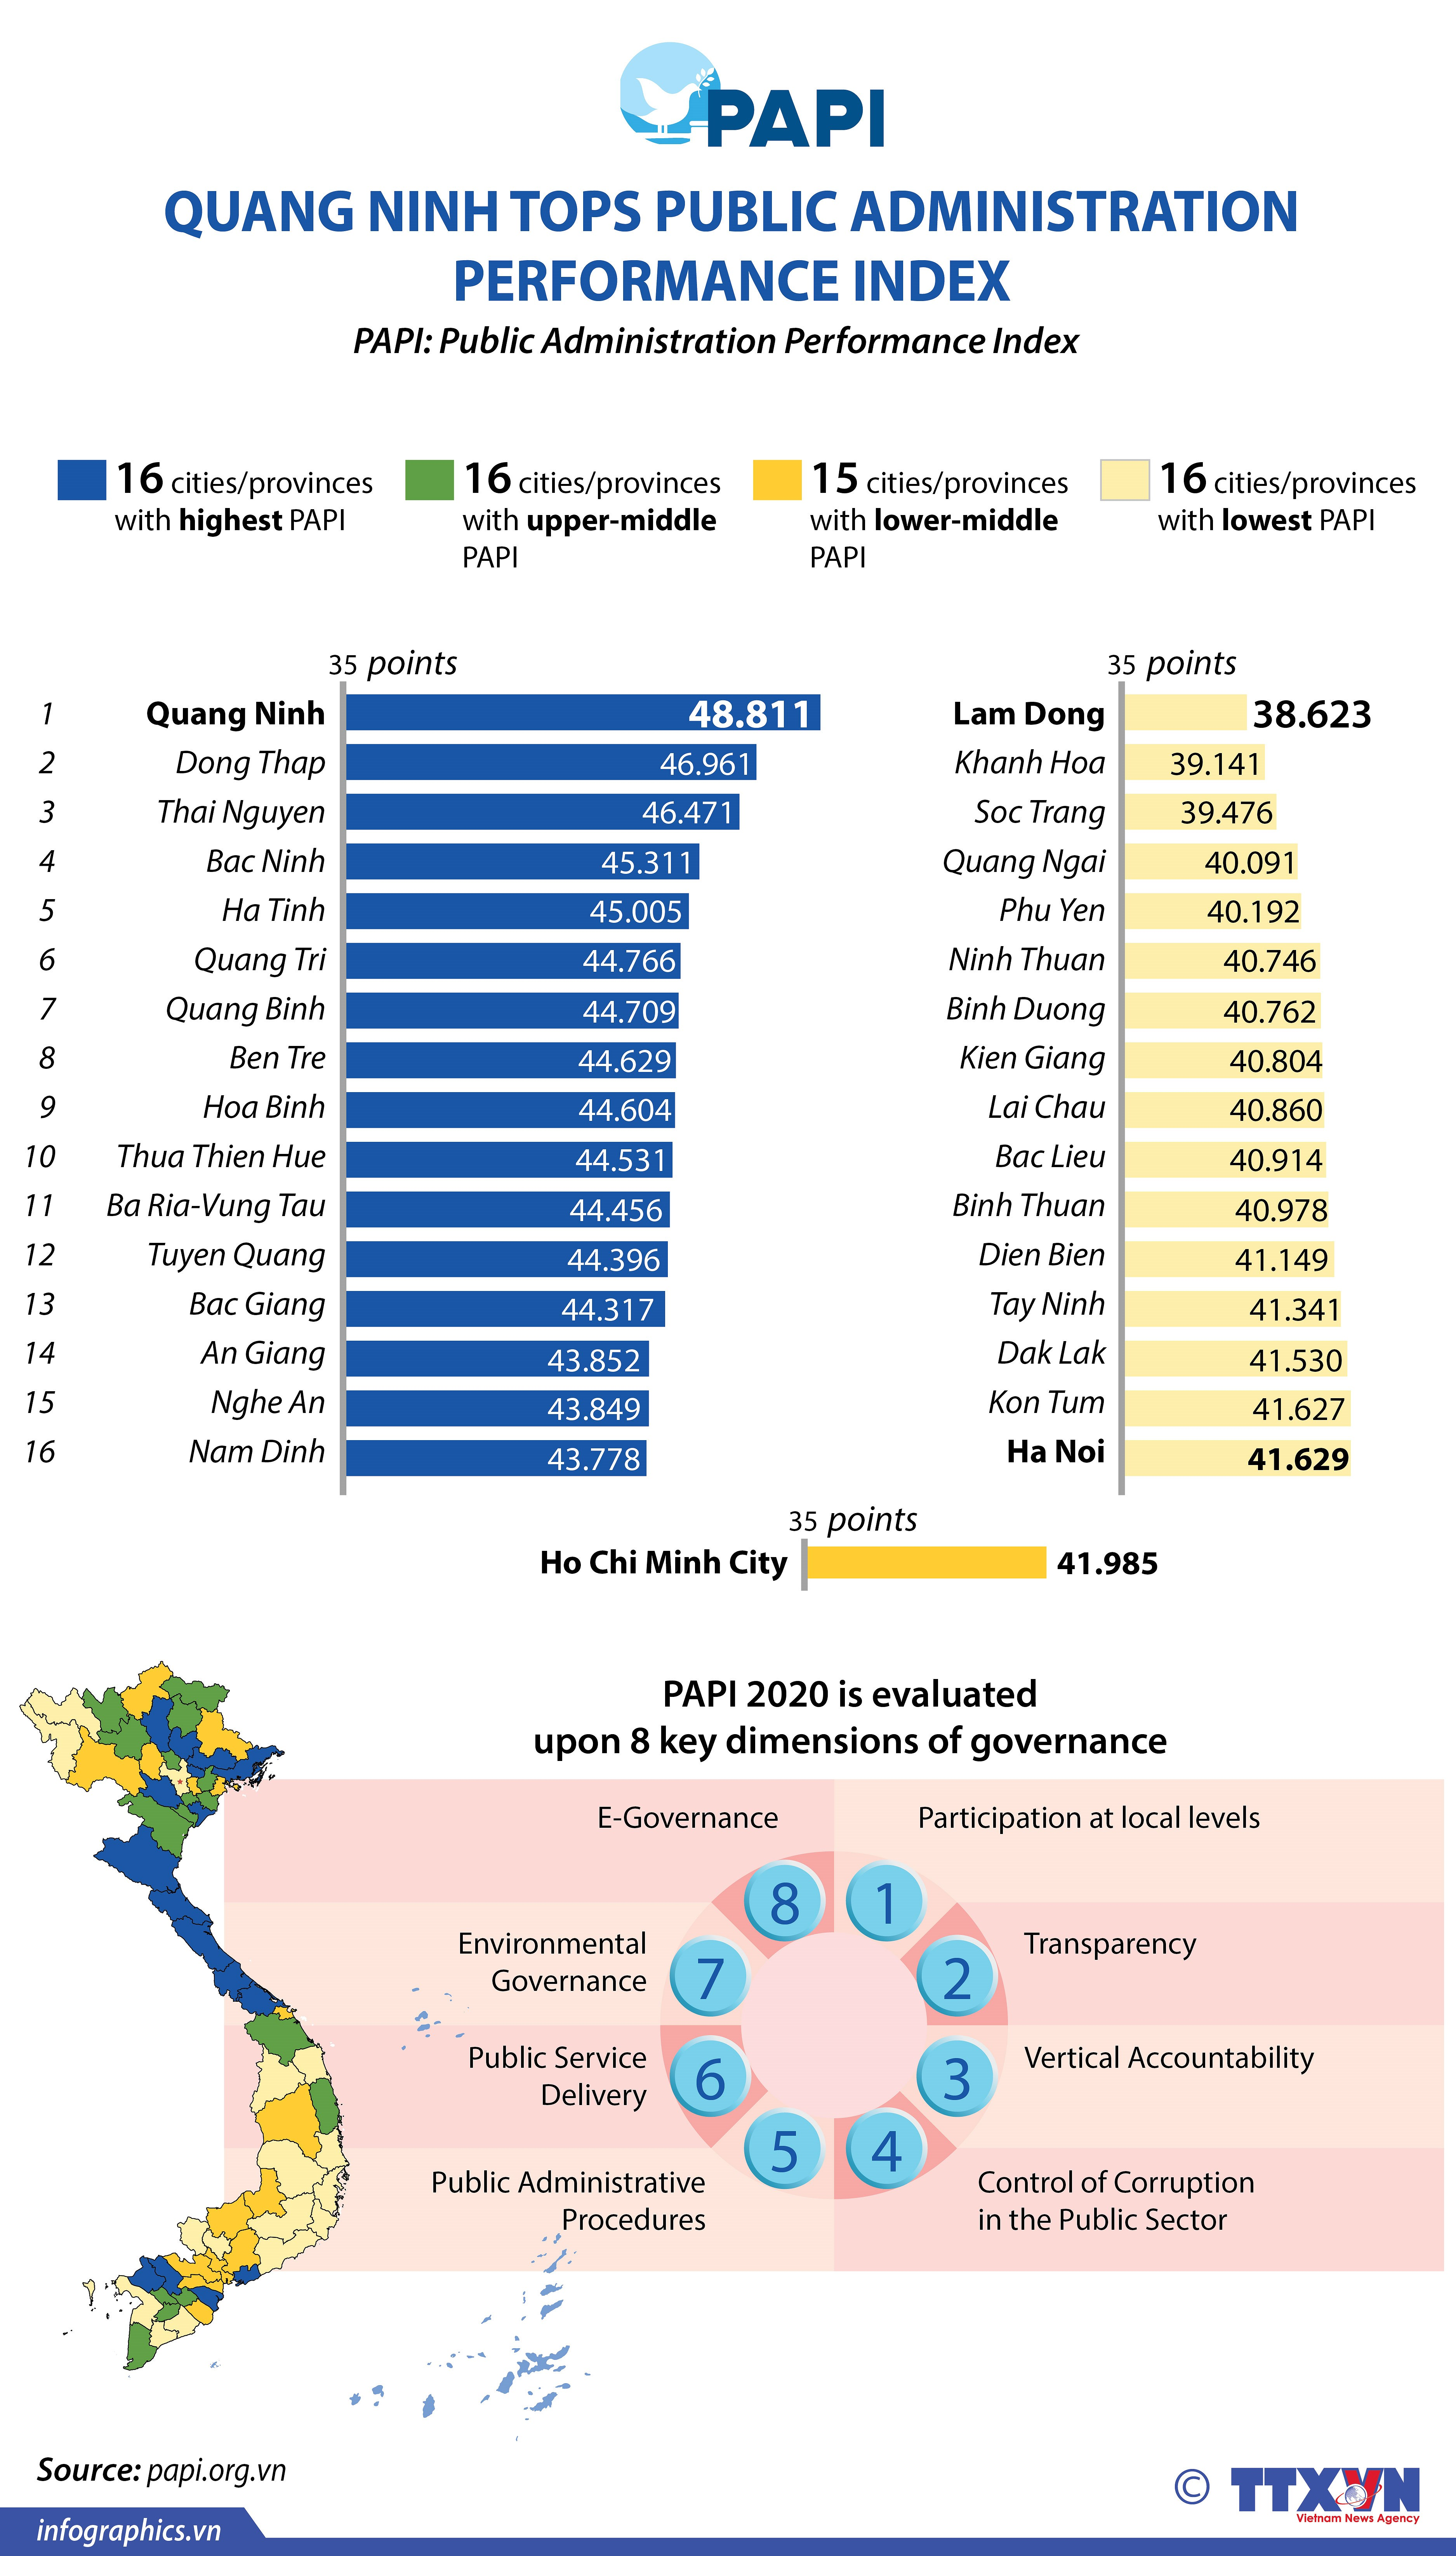 Quang Ninh tops public administration performance index hinh anh 1